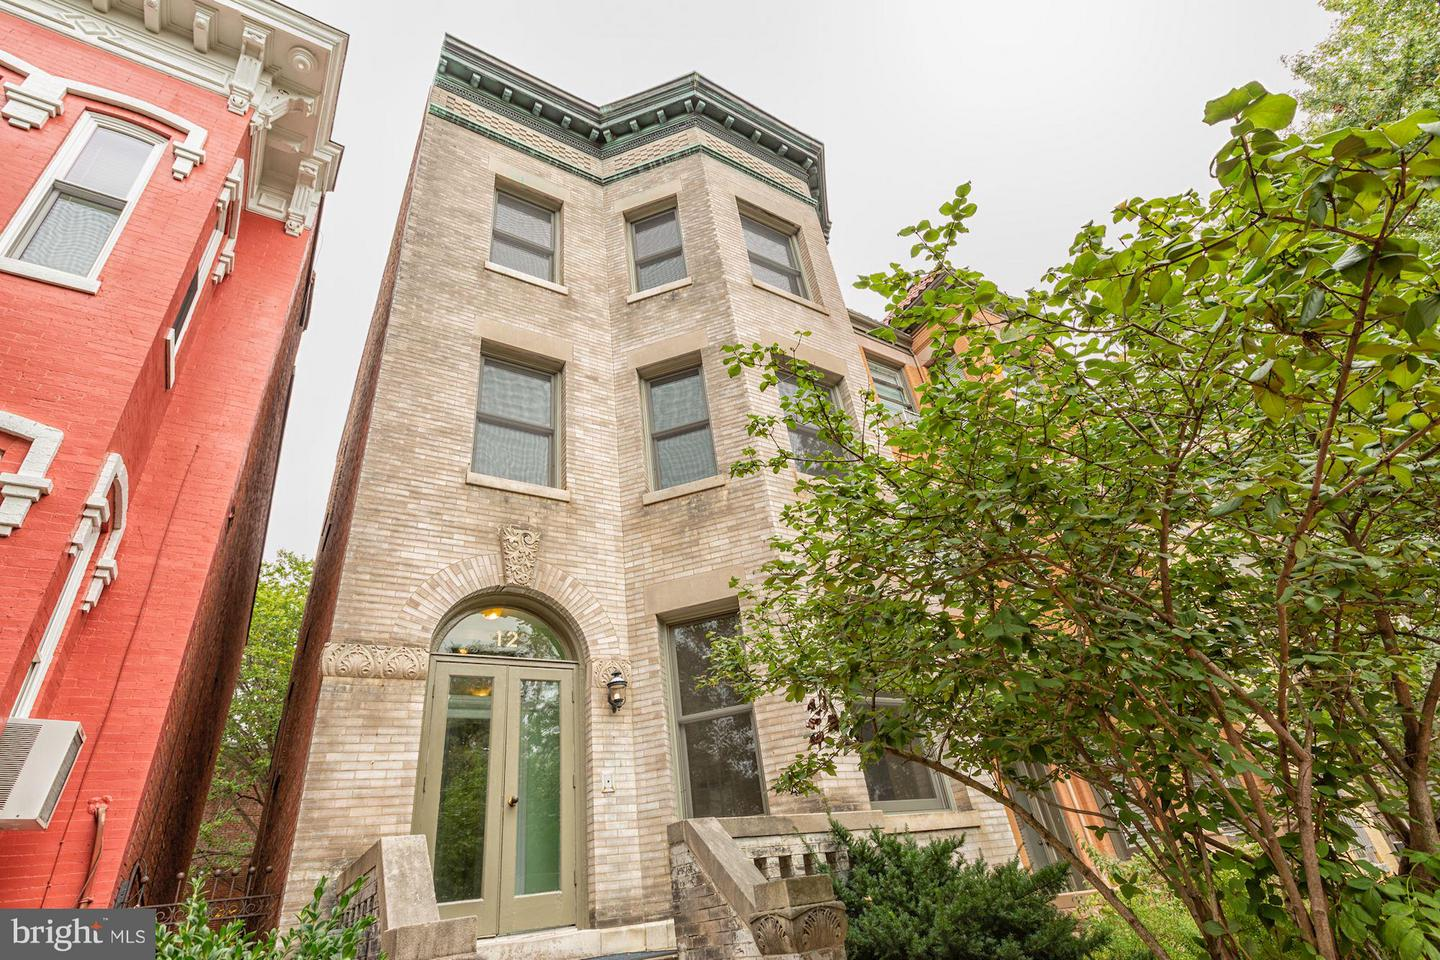 Multi-Family Home for Sale at 12 3rd St SE 12 3rd St SE Washington, District Of Columbia 20003 United States